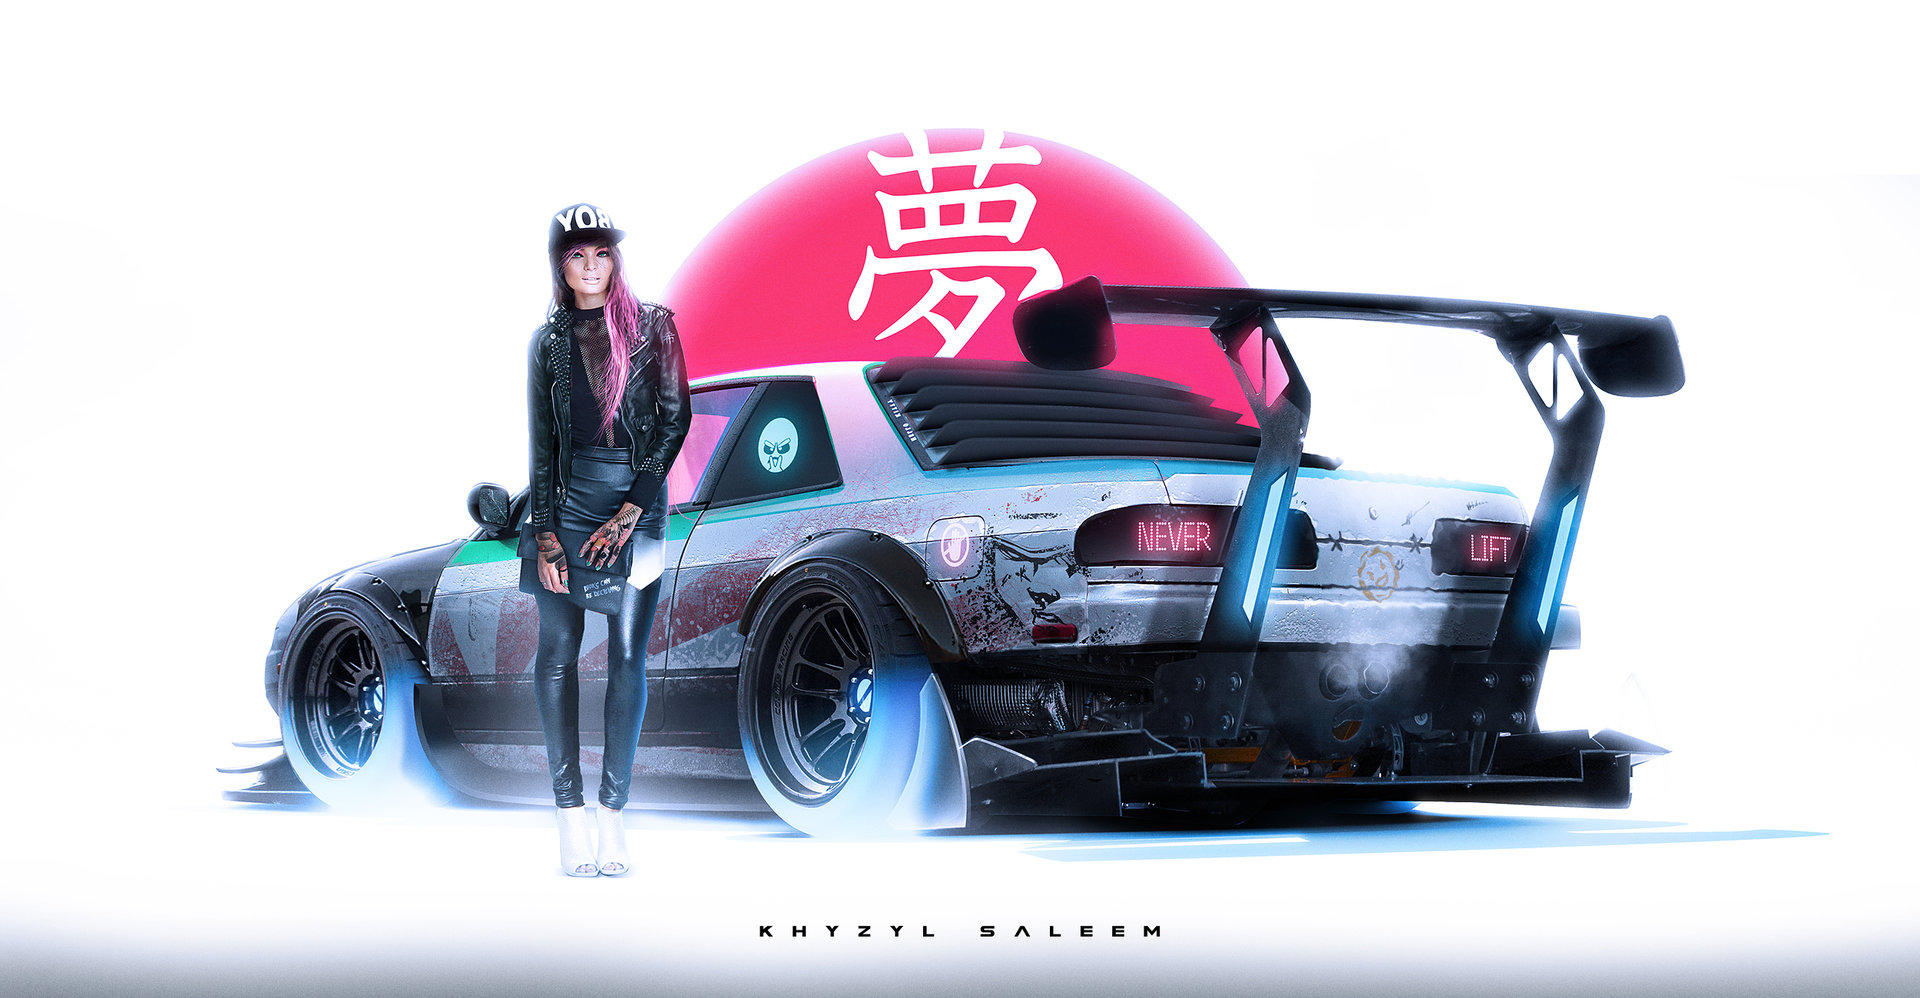 Cool Cars Drifting Wallpapers Hd Artstation Hope For The Future Khyzyl Saleem